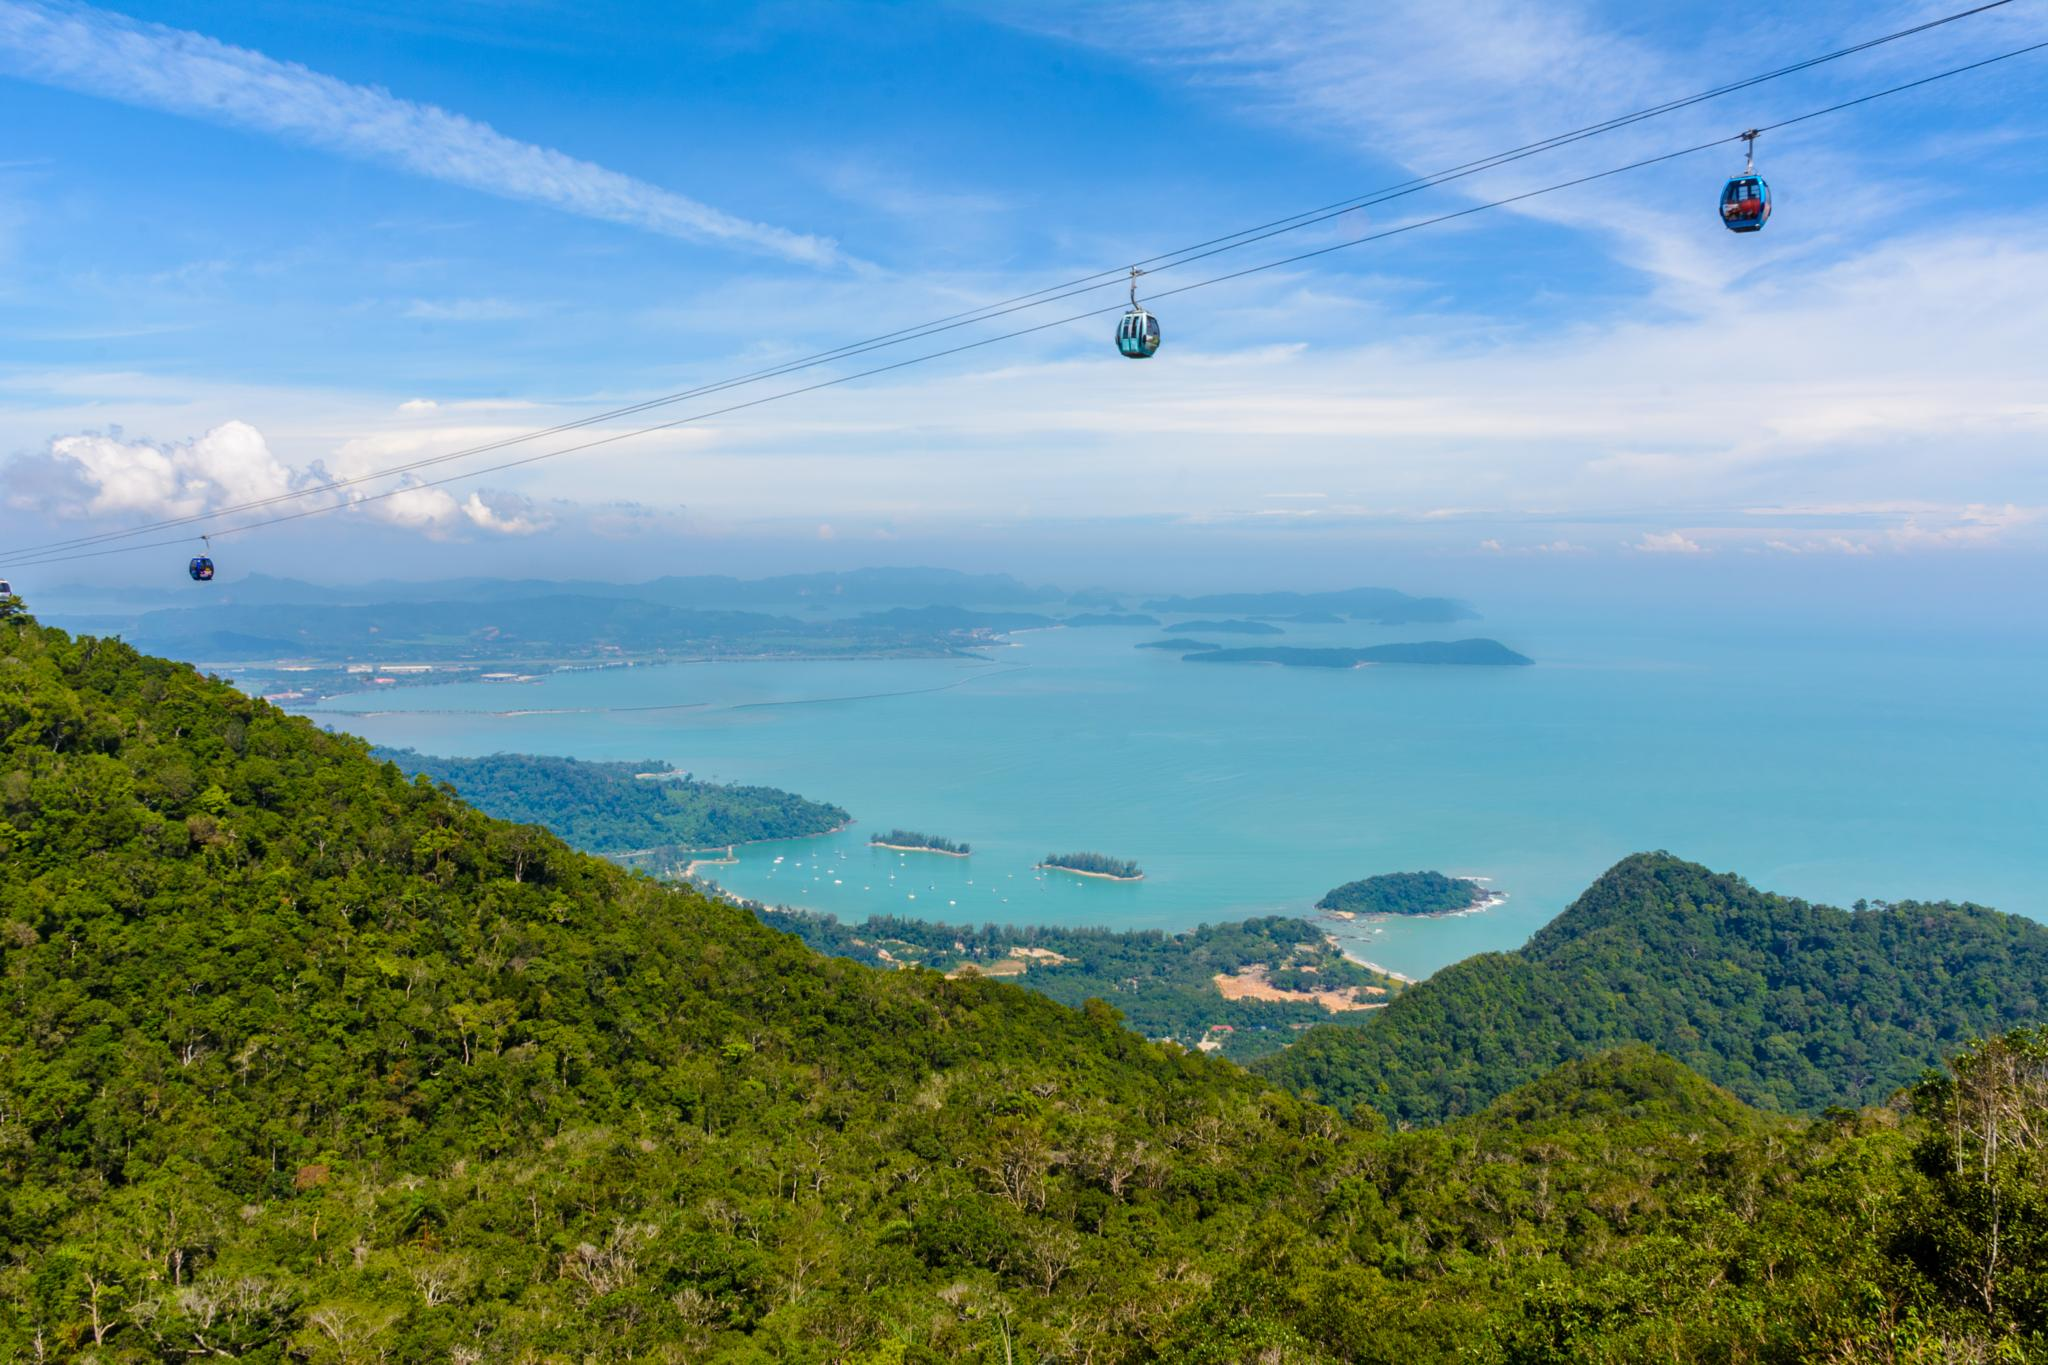 Cable car ride by Malcolm